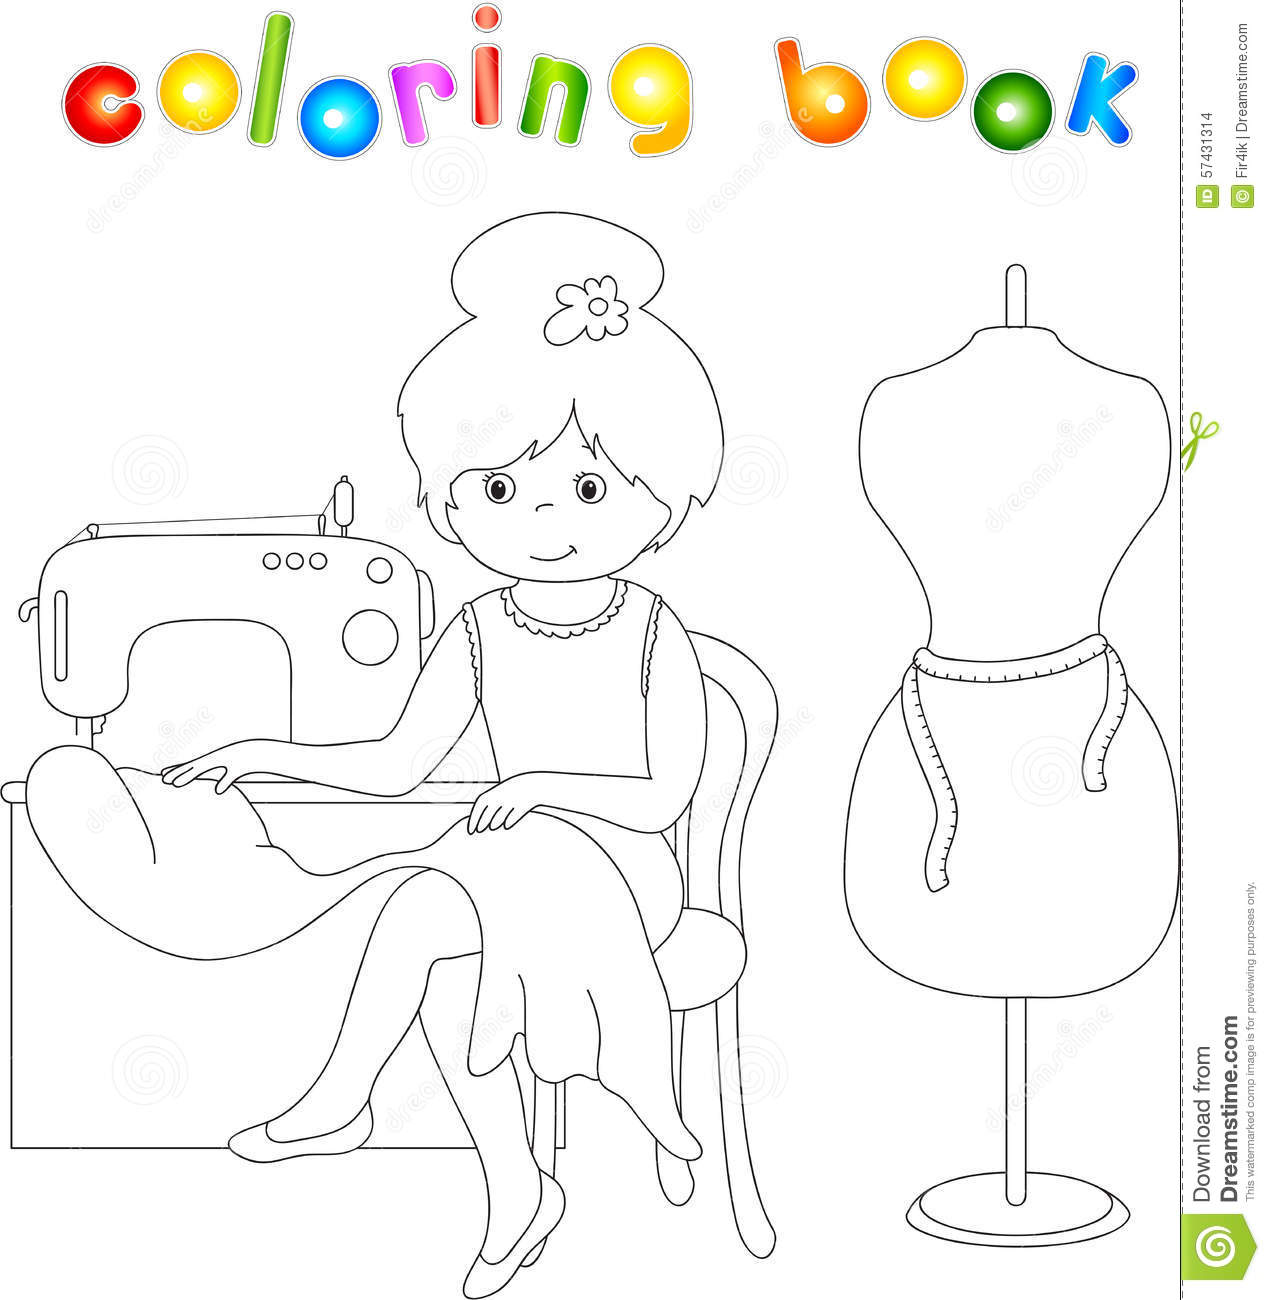 Anatomy coloring book for health professions - Pretty Cute Seamstress Is Sitting At The Sewing Machine Stock Images